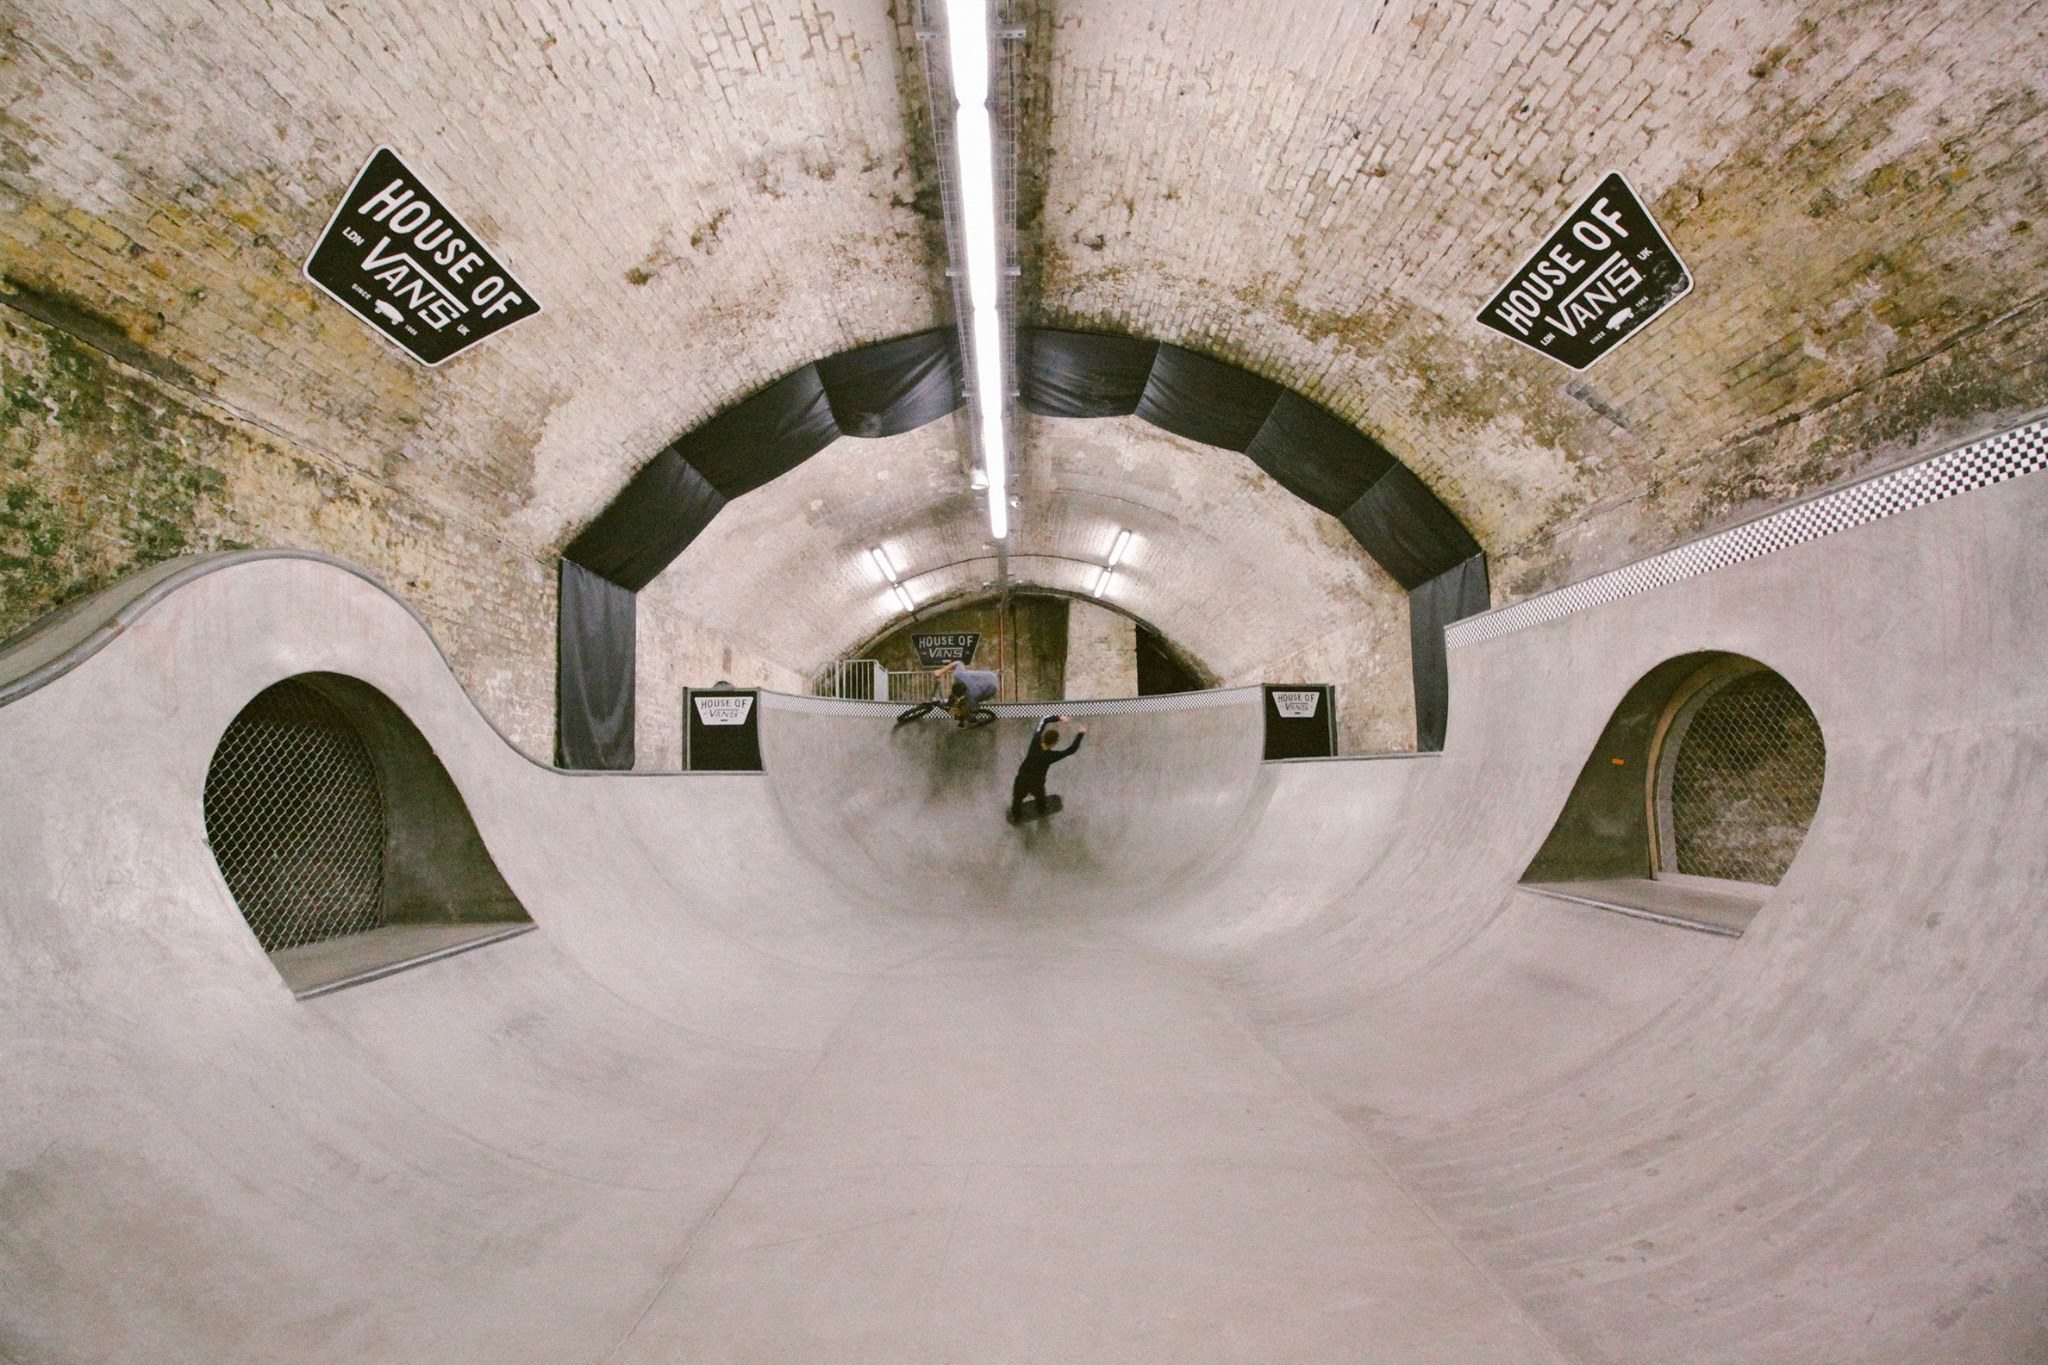 House of vans underground skate